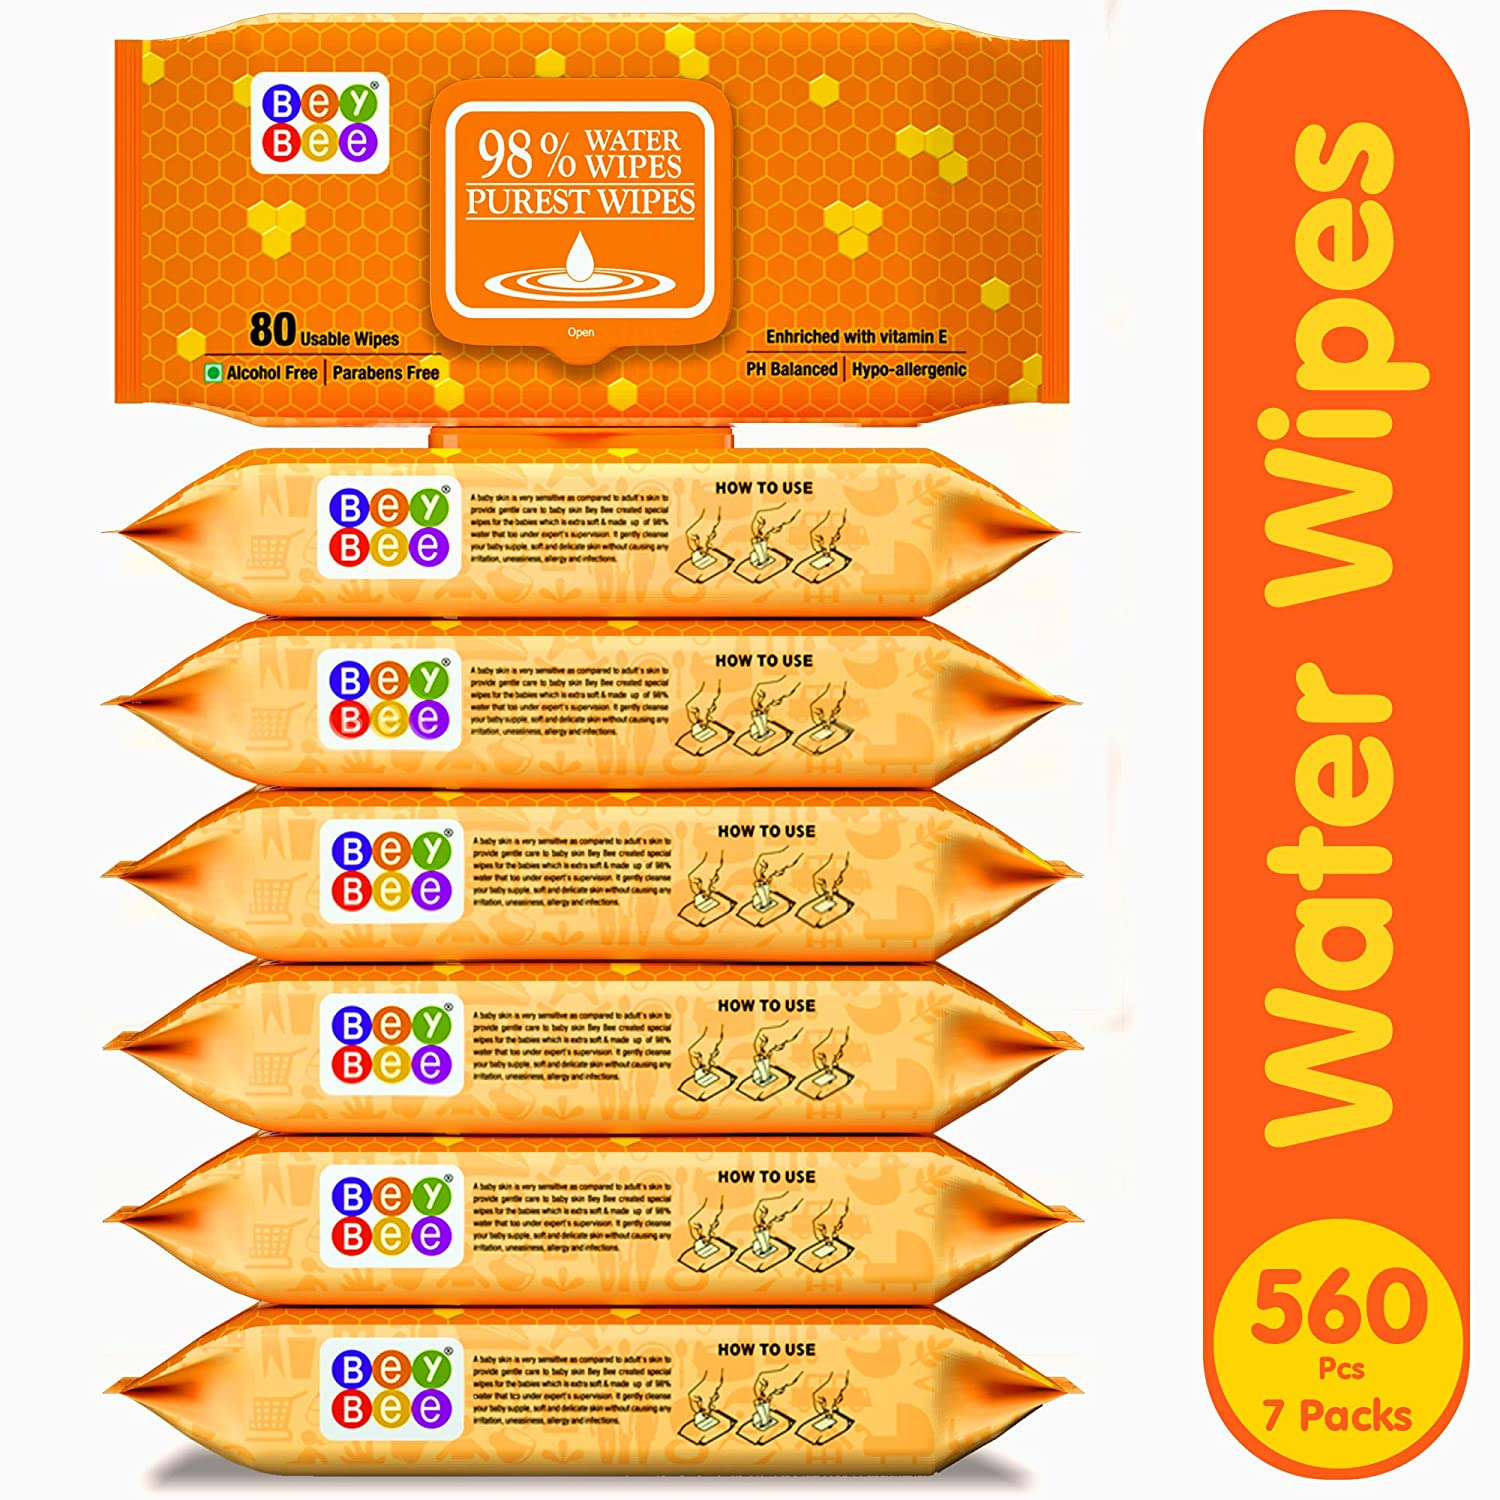 Bey Bee Baby Water Wipes with Lid (Pack of 7, 80 Sheets per Pack)